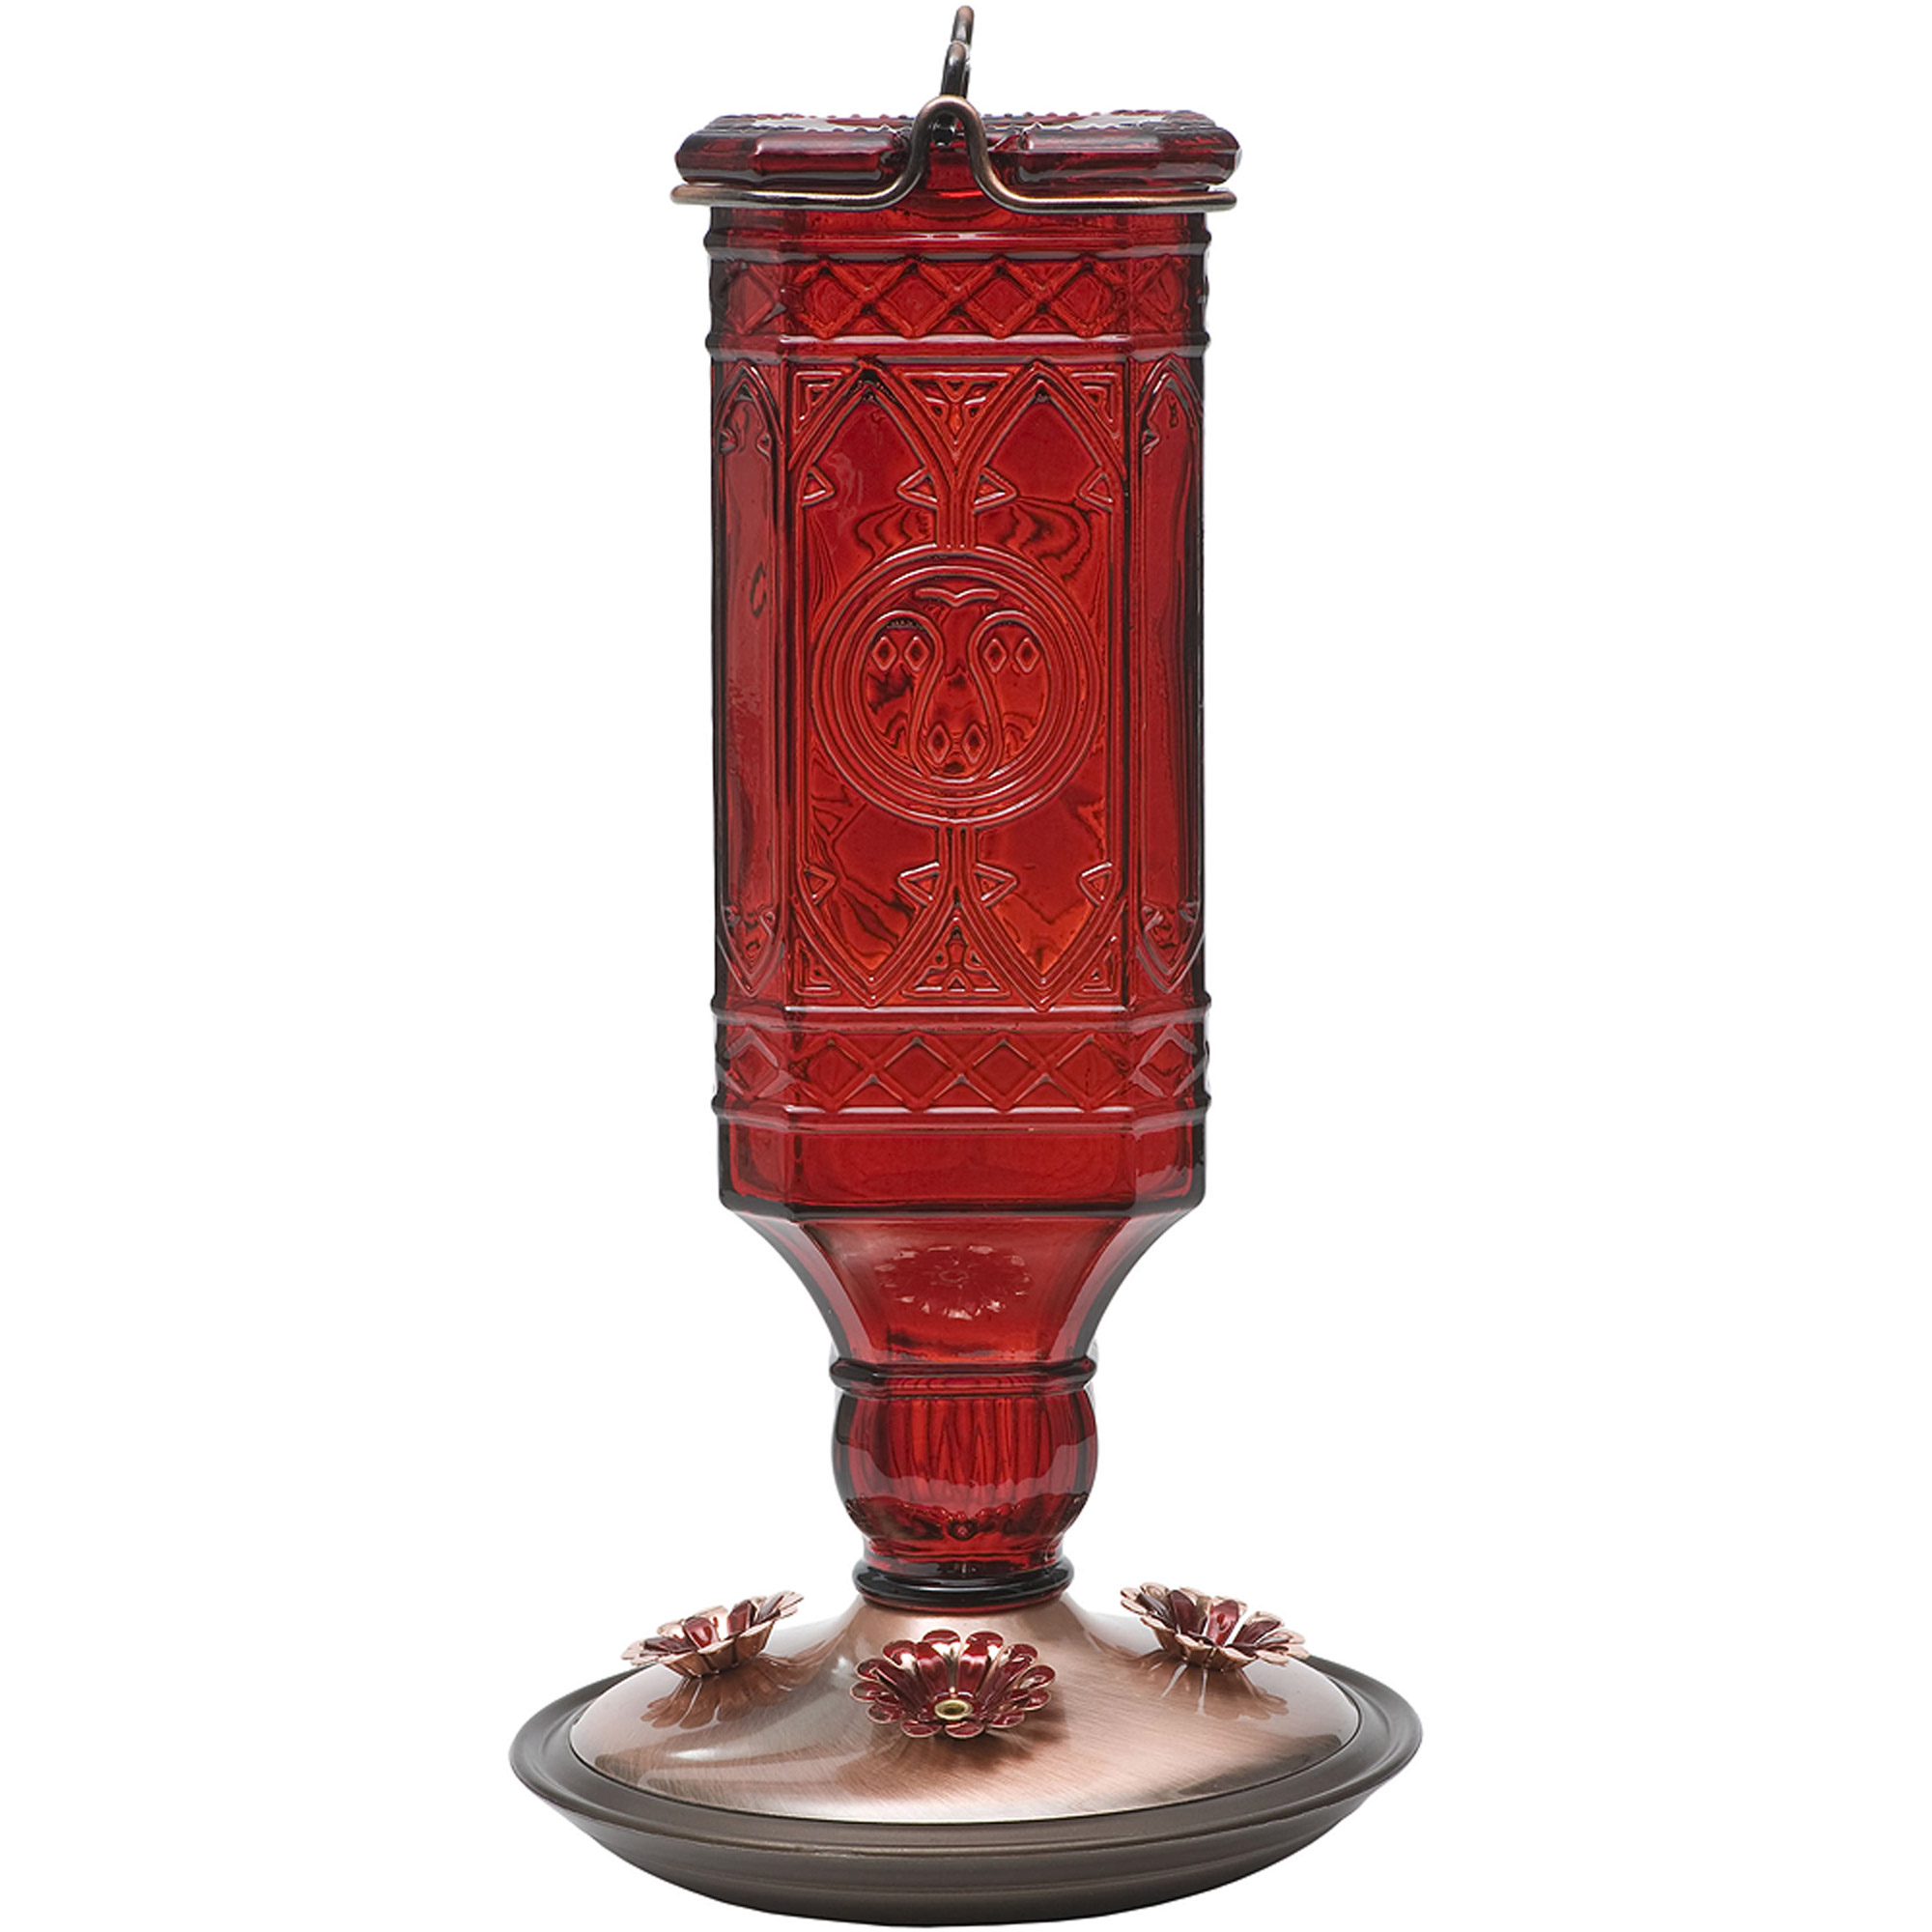 Perky-Pet Red Square Antique Bottle Glass HummingBirdfeeder by Woodstream Corp